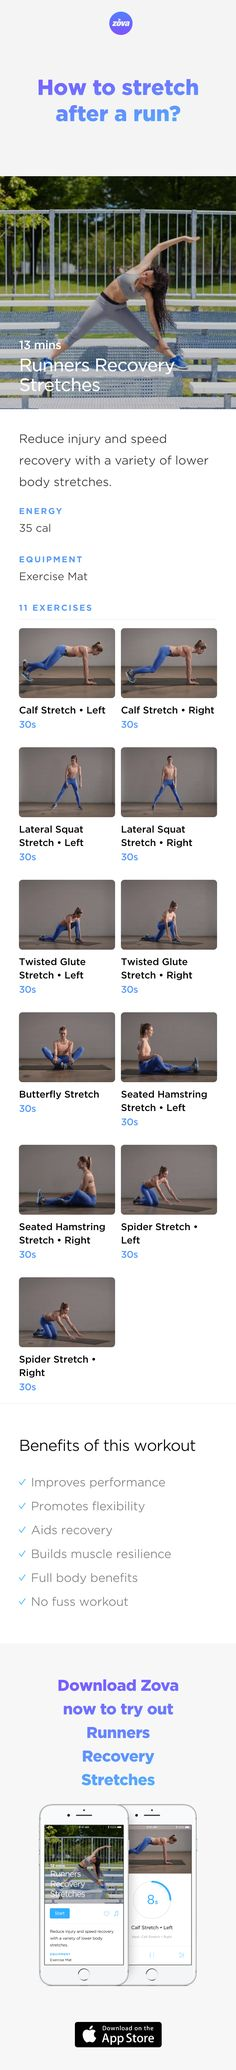 Stretching after a run will help you cool down gradually, avoid injuries in the future and improve your flexibility. As running uses specific muscles, it's important to target those areas in your port-run stretches. The workout below is designed for runners to stretch their lower back, quads, hip flexors, and hamstrings. #running #runners #weightloss #workout #fitness #HIIT #fullbody #sweat #bodyweight #calories